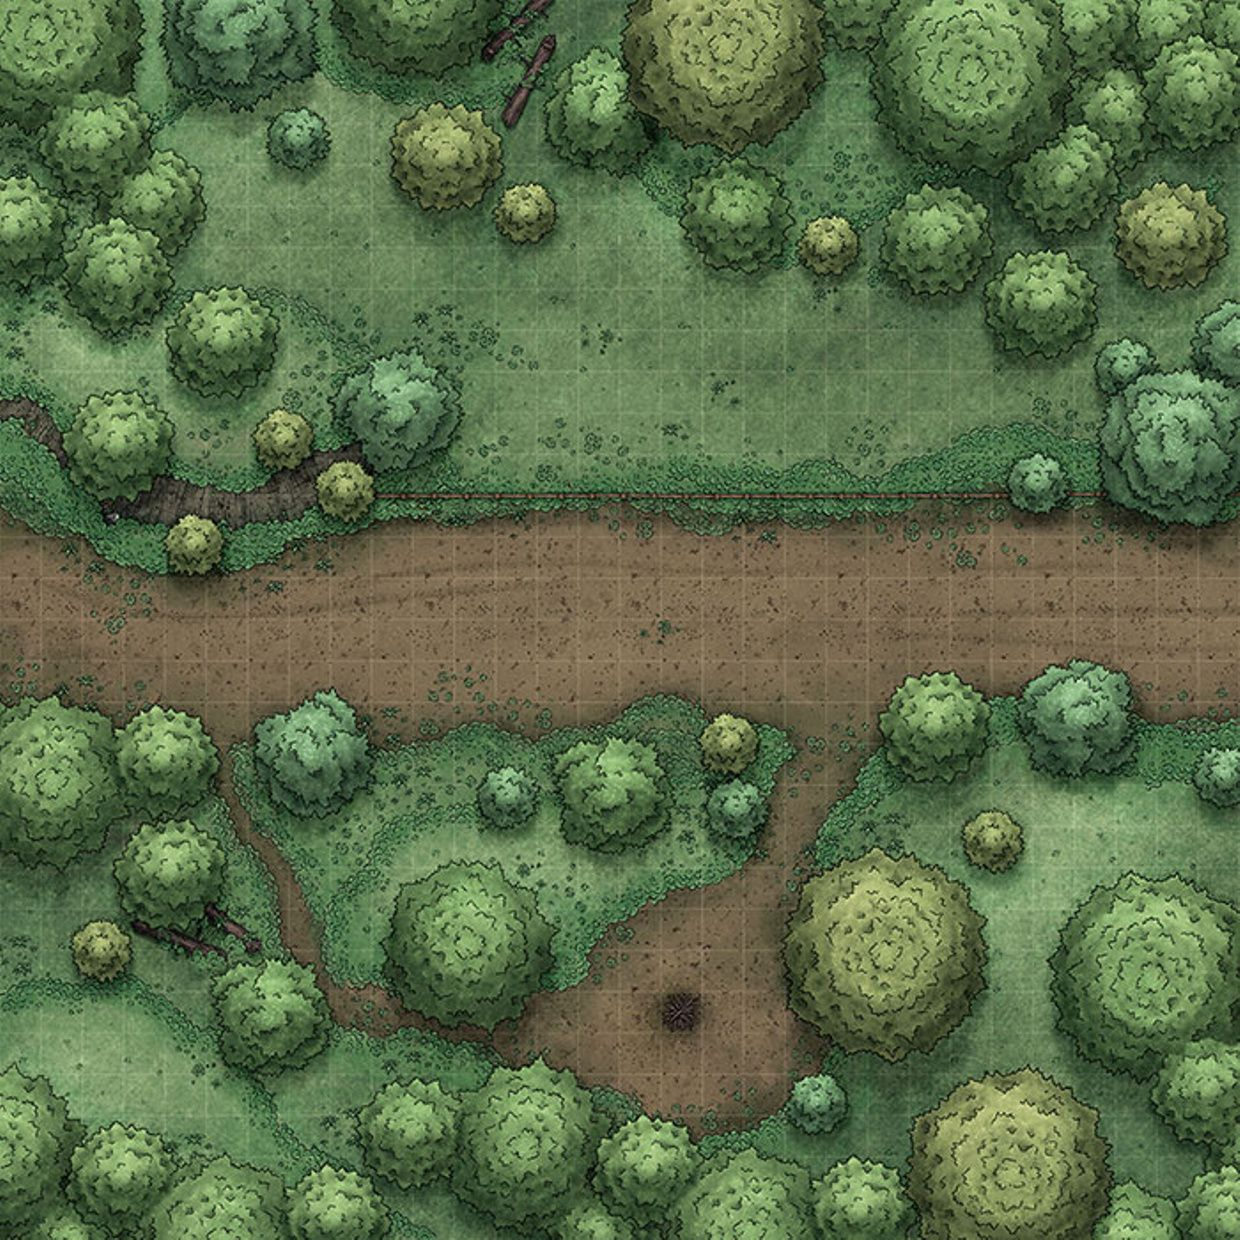 Afternoon Maps is creating RPG and DnD battlemaps in 2019